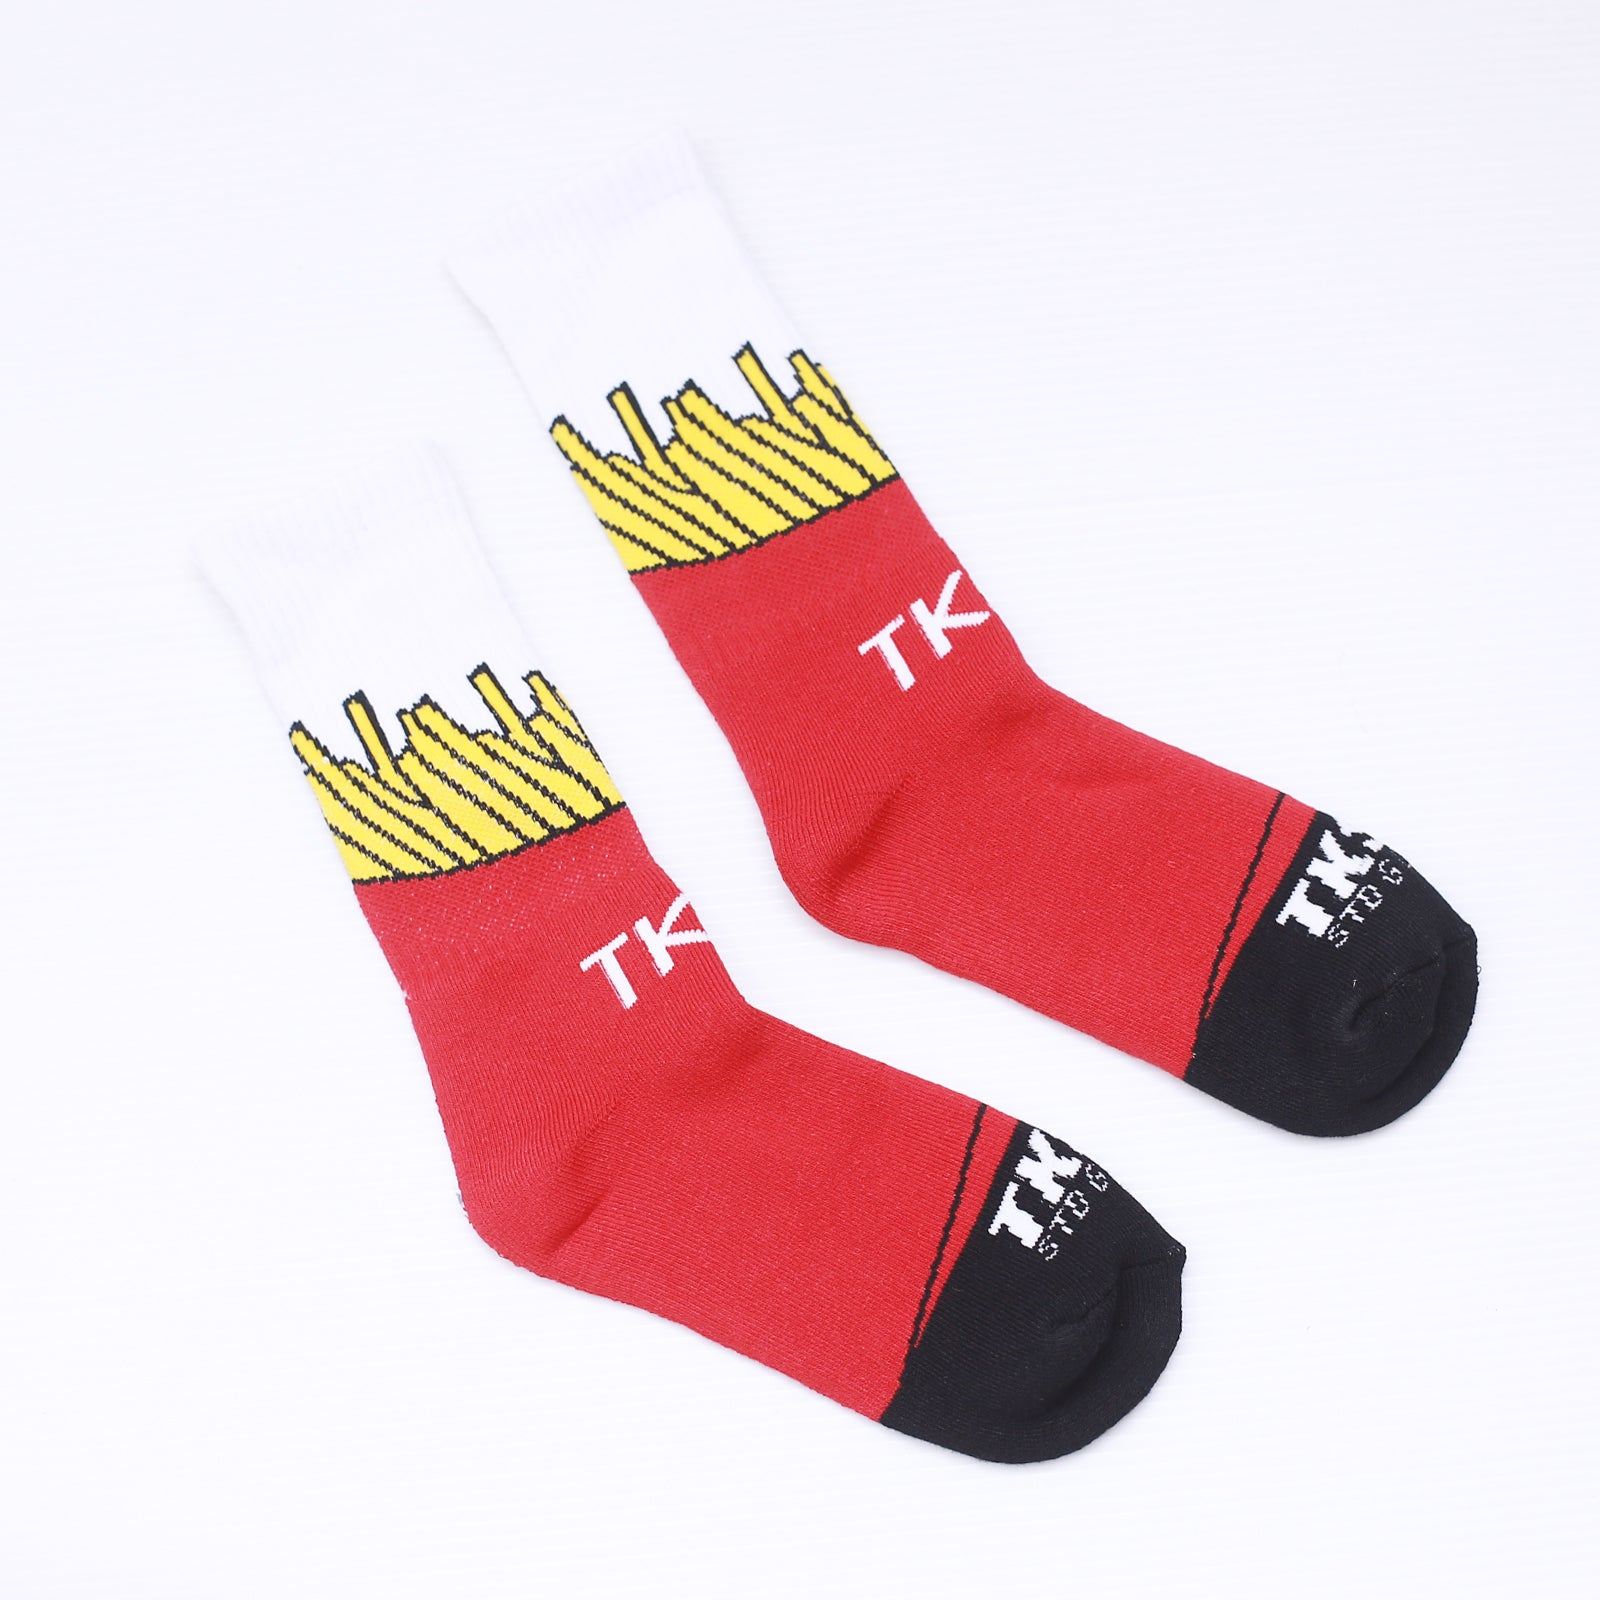 TKSB - Fries Socks - Wheel Love Skateshop